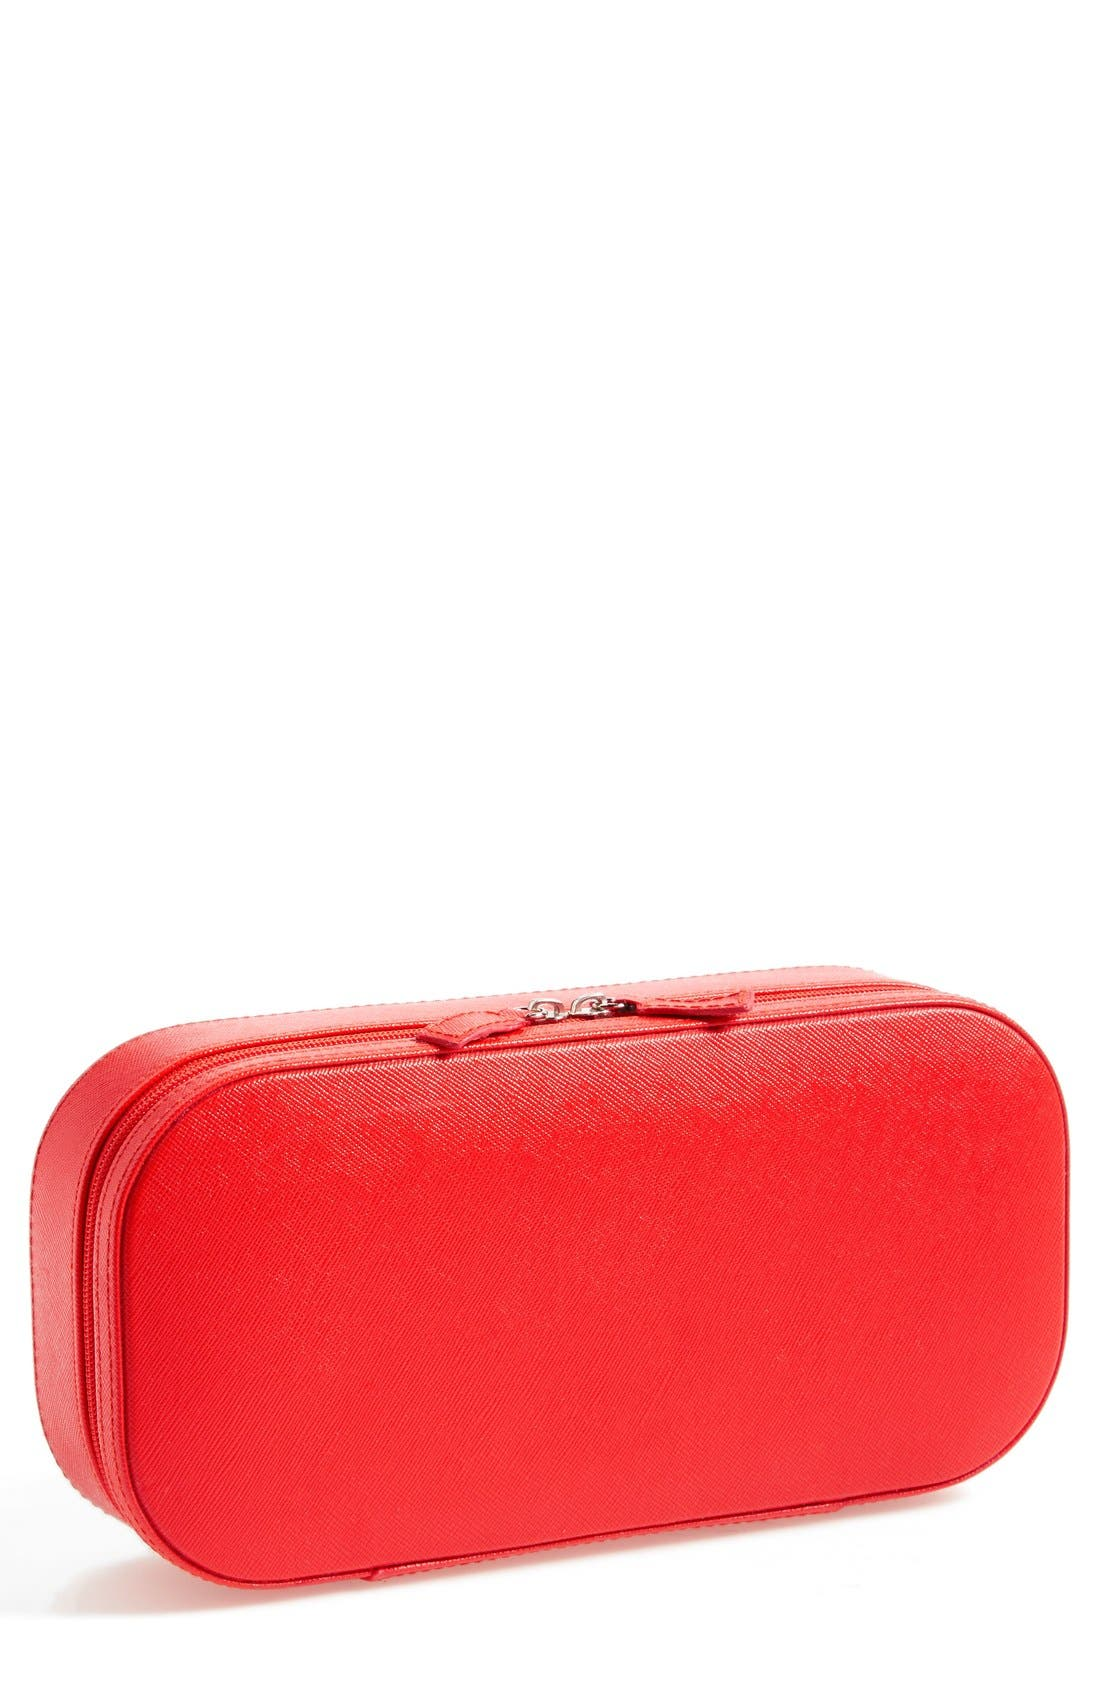 Travel Jewelry Case,                         Main,                         color, Red